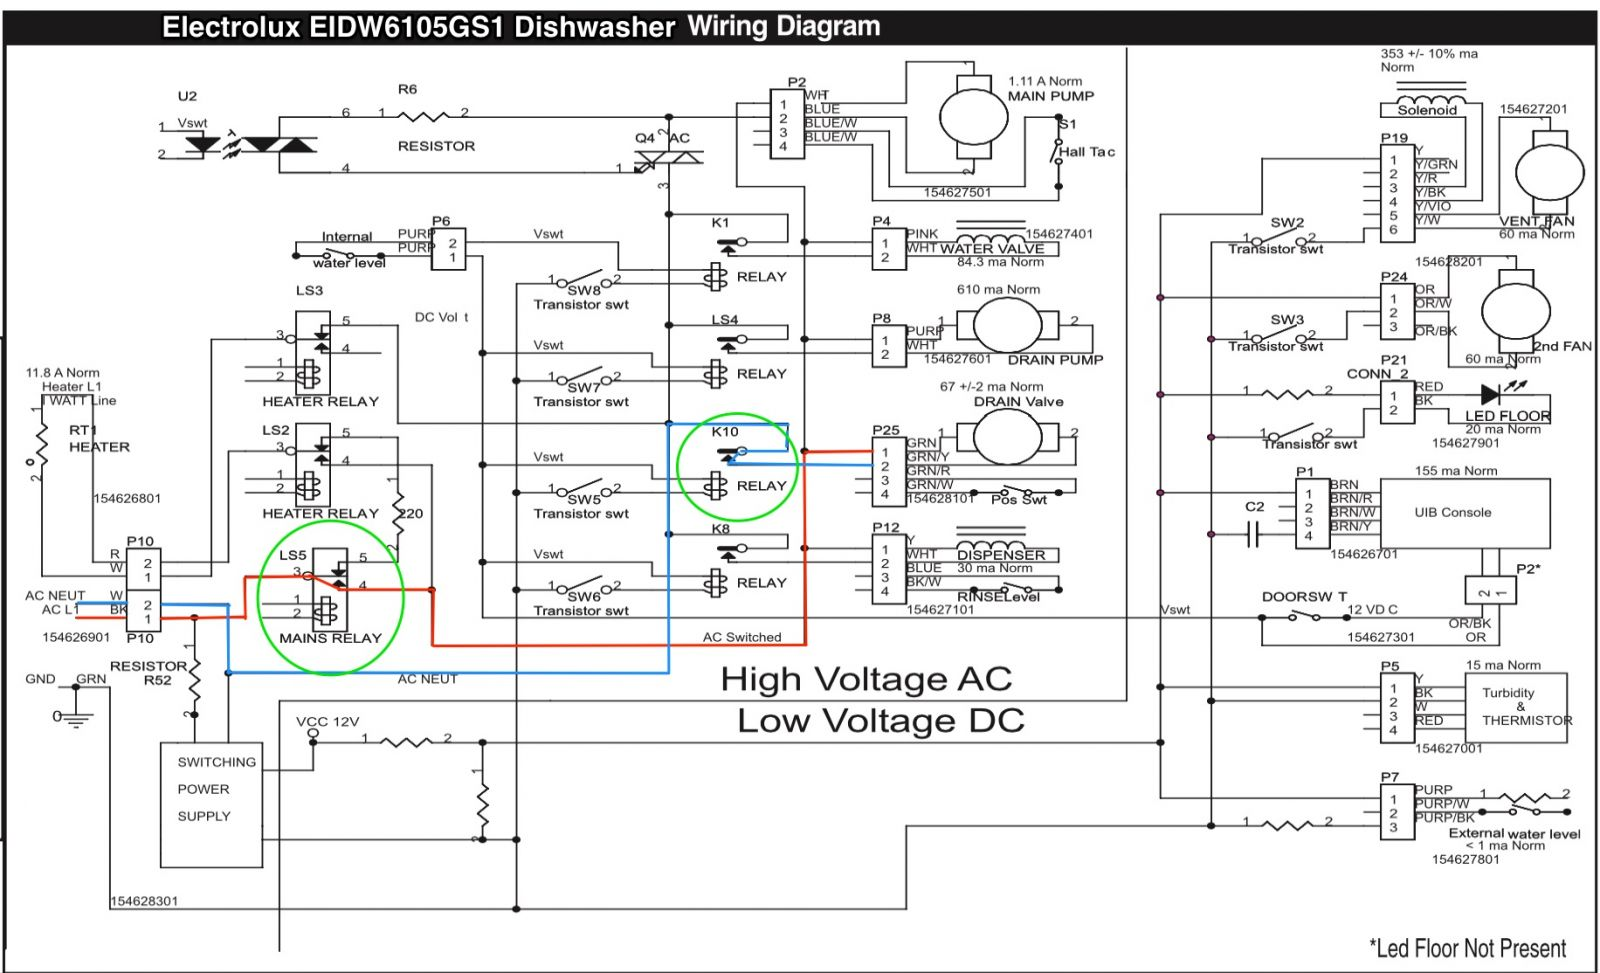 Star Delta Control Wiring Diagram Electrolux Schematic Change Your Idea With Eidw6105gs1 Dishwasher The Appliantology Rh Org G Epic